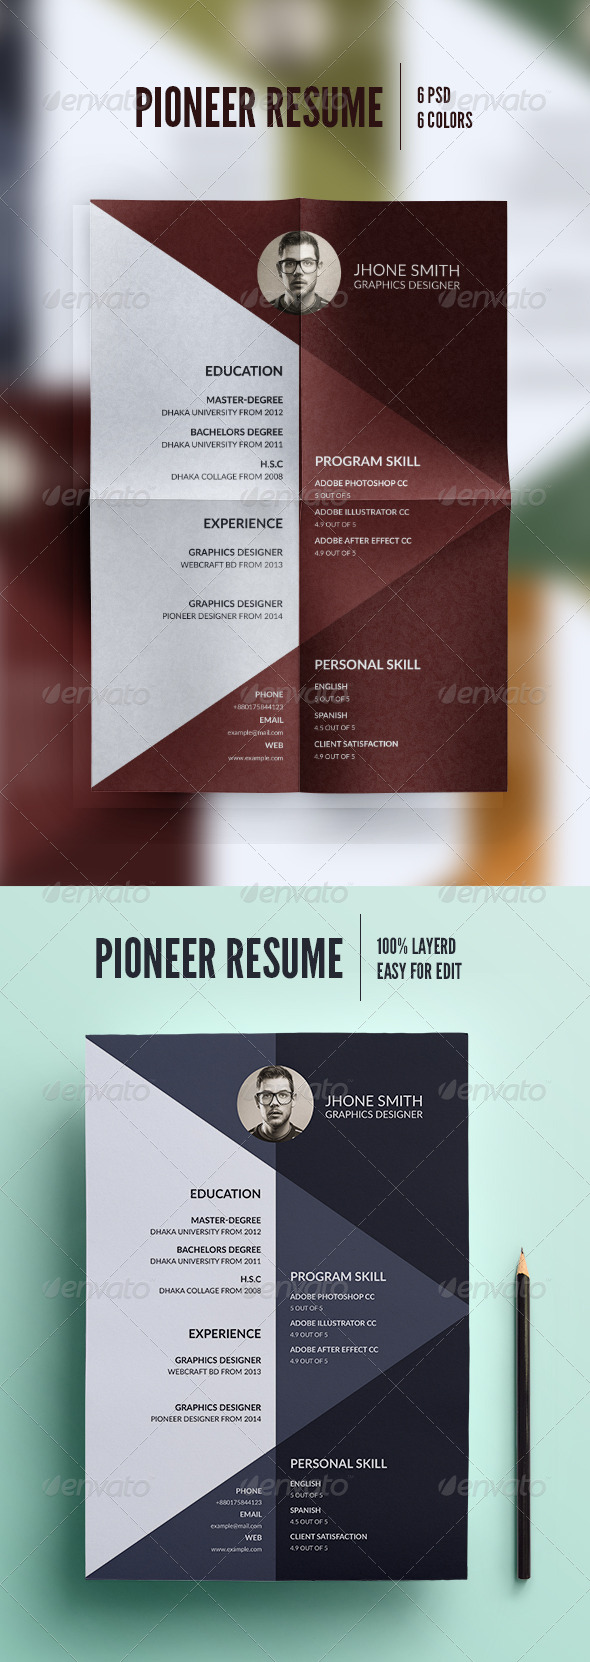 GraphicRiver Pioneer Resume 8259358